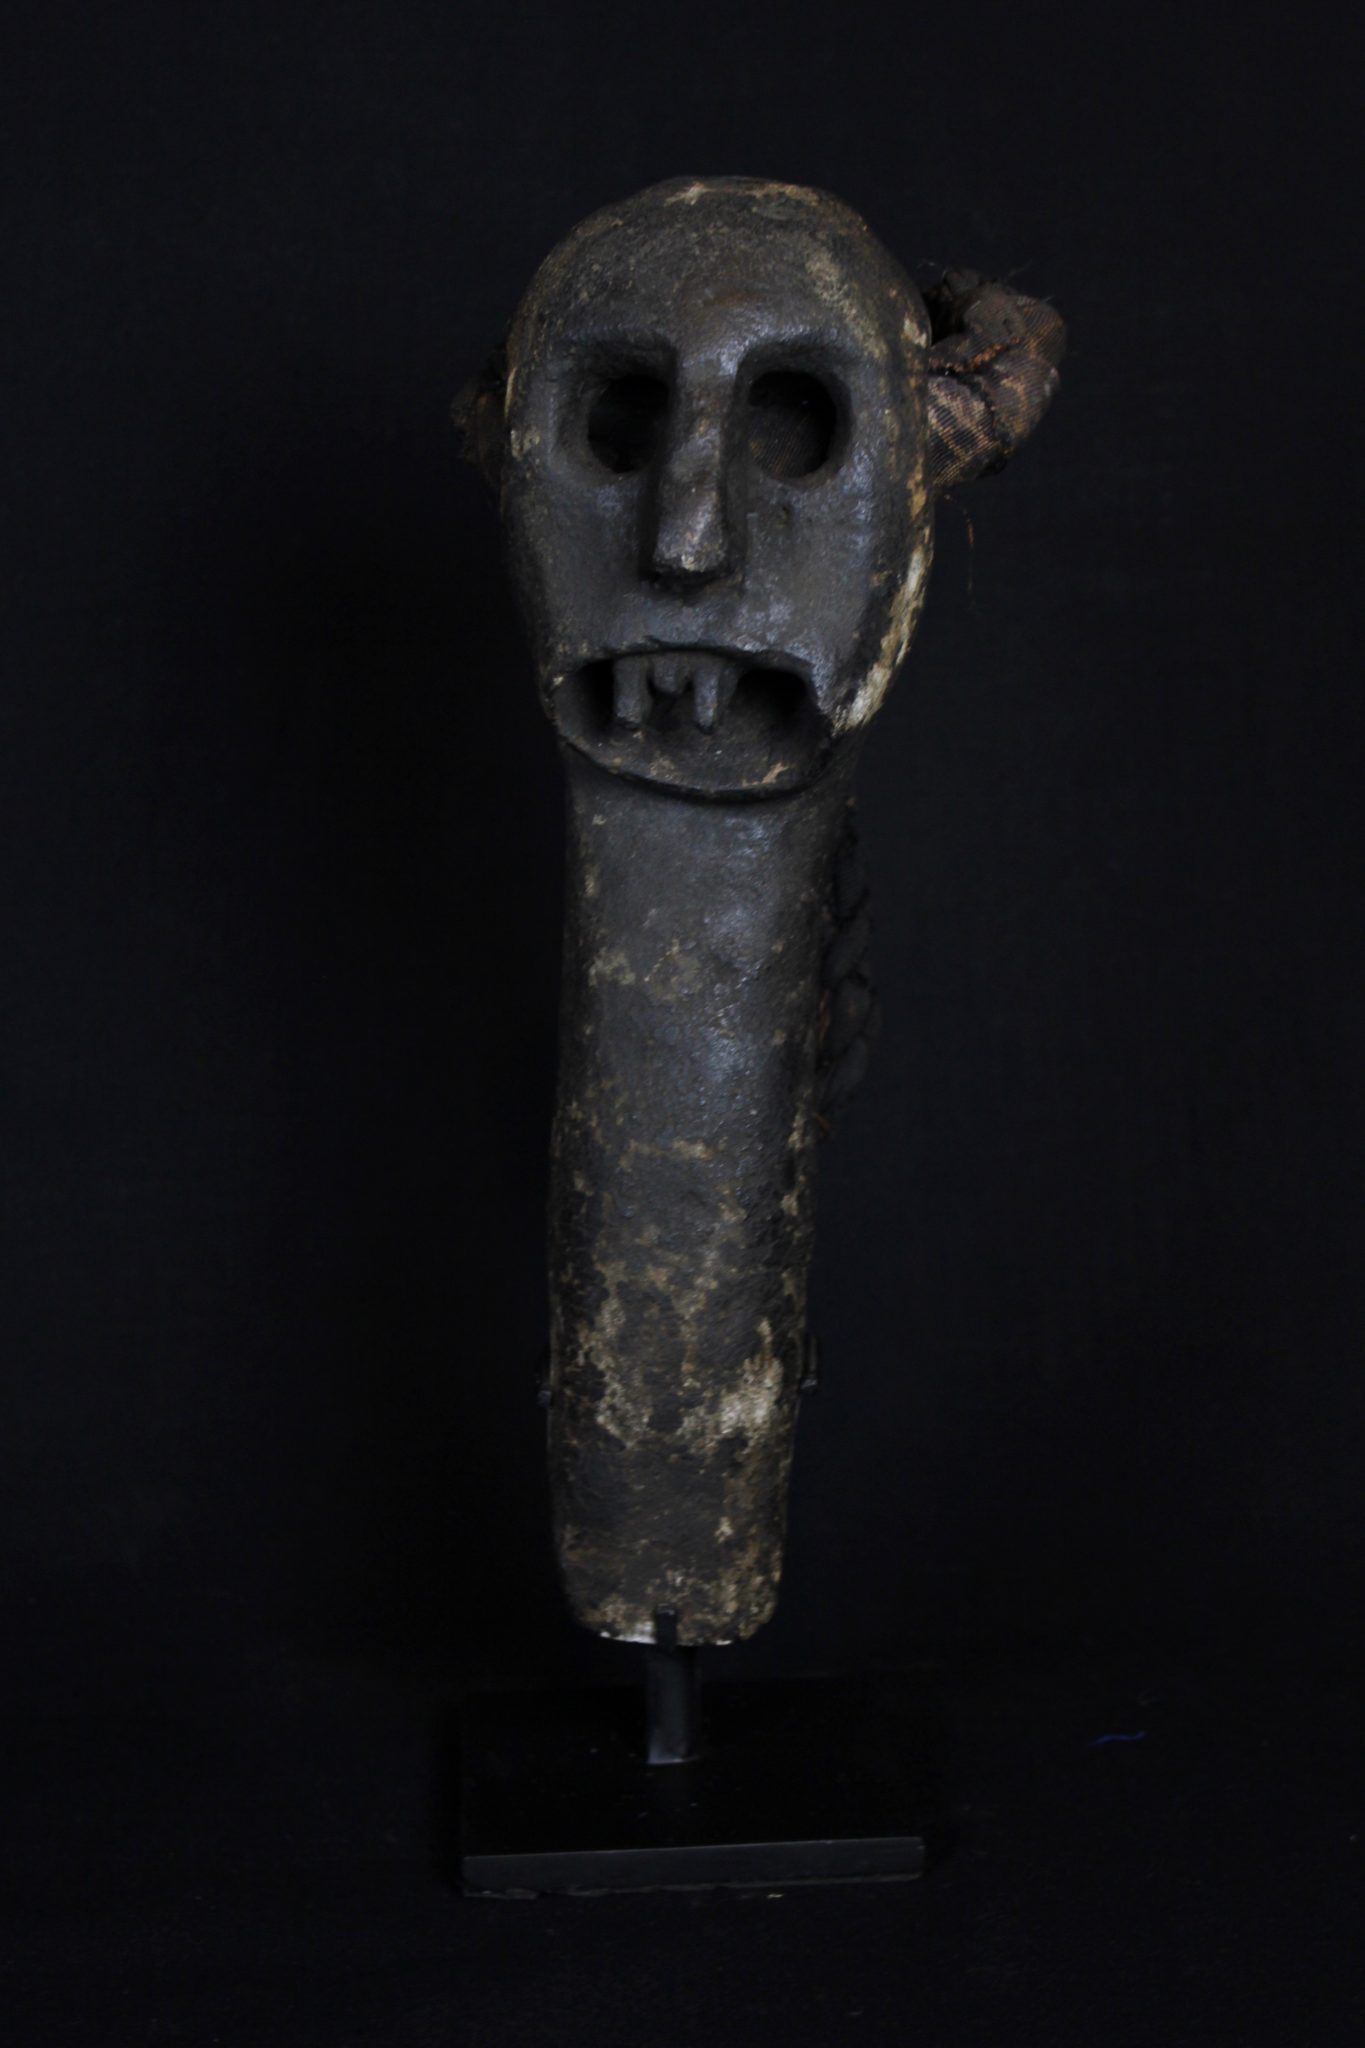 "Nitta Watu (rare), Kitchen Protector Figure - Shaman Power Object, West Flores Island, Lesser Sunda Islands, Indonesia, Maumere district, Nita or Bena Village, Early to mid 19th c, Stone, pigment, cloth strap for hanging. Used to protect a house or home. 14"" x 5 ½"" x 6"", $1700."